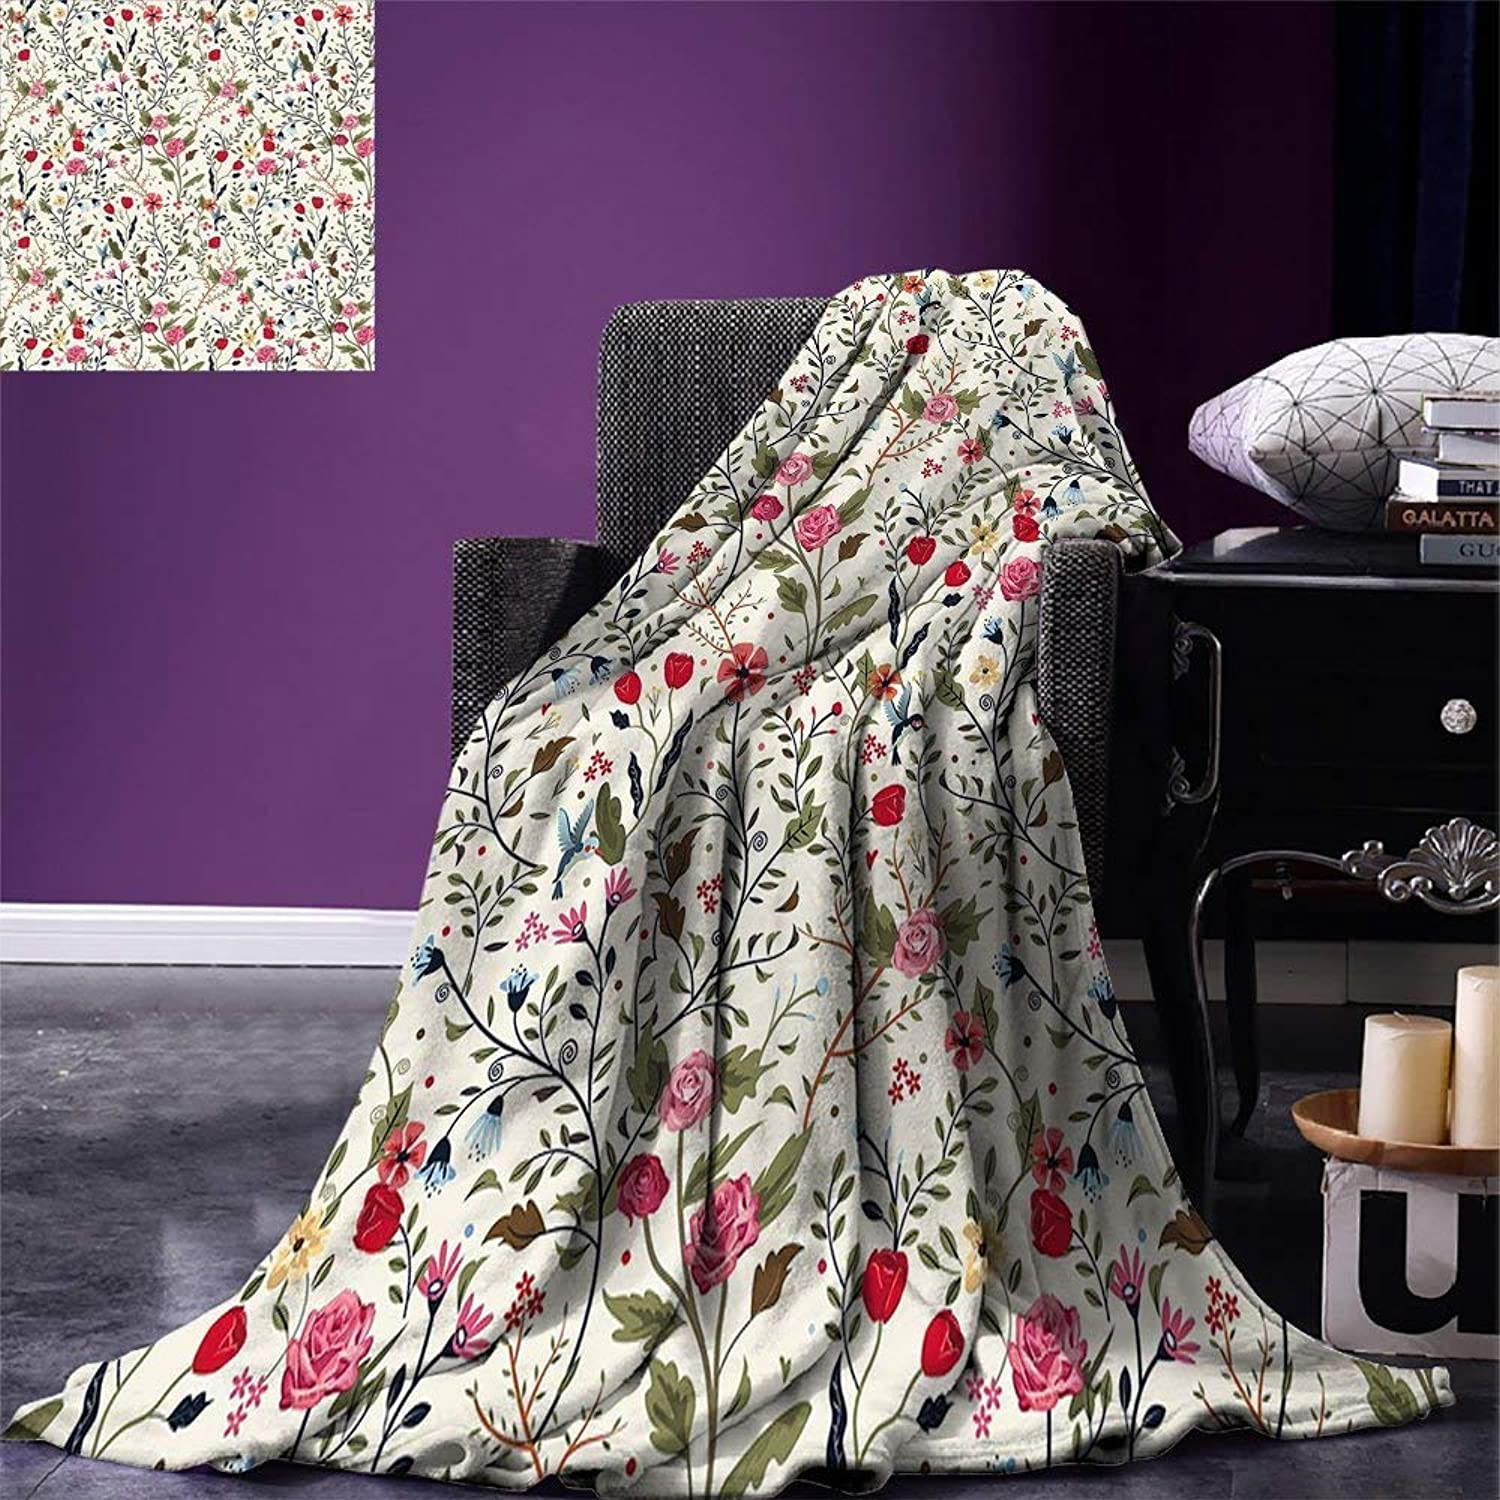 VANKINE Floral Super Soft Lightweight Blanket Vibrant colord Complex Image Birds with pinks Leaves and Polka Dots Nature Scenery Oversized Travel Fashion Blanket Multicolor